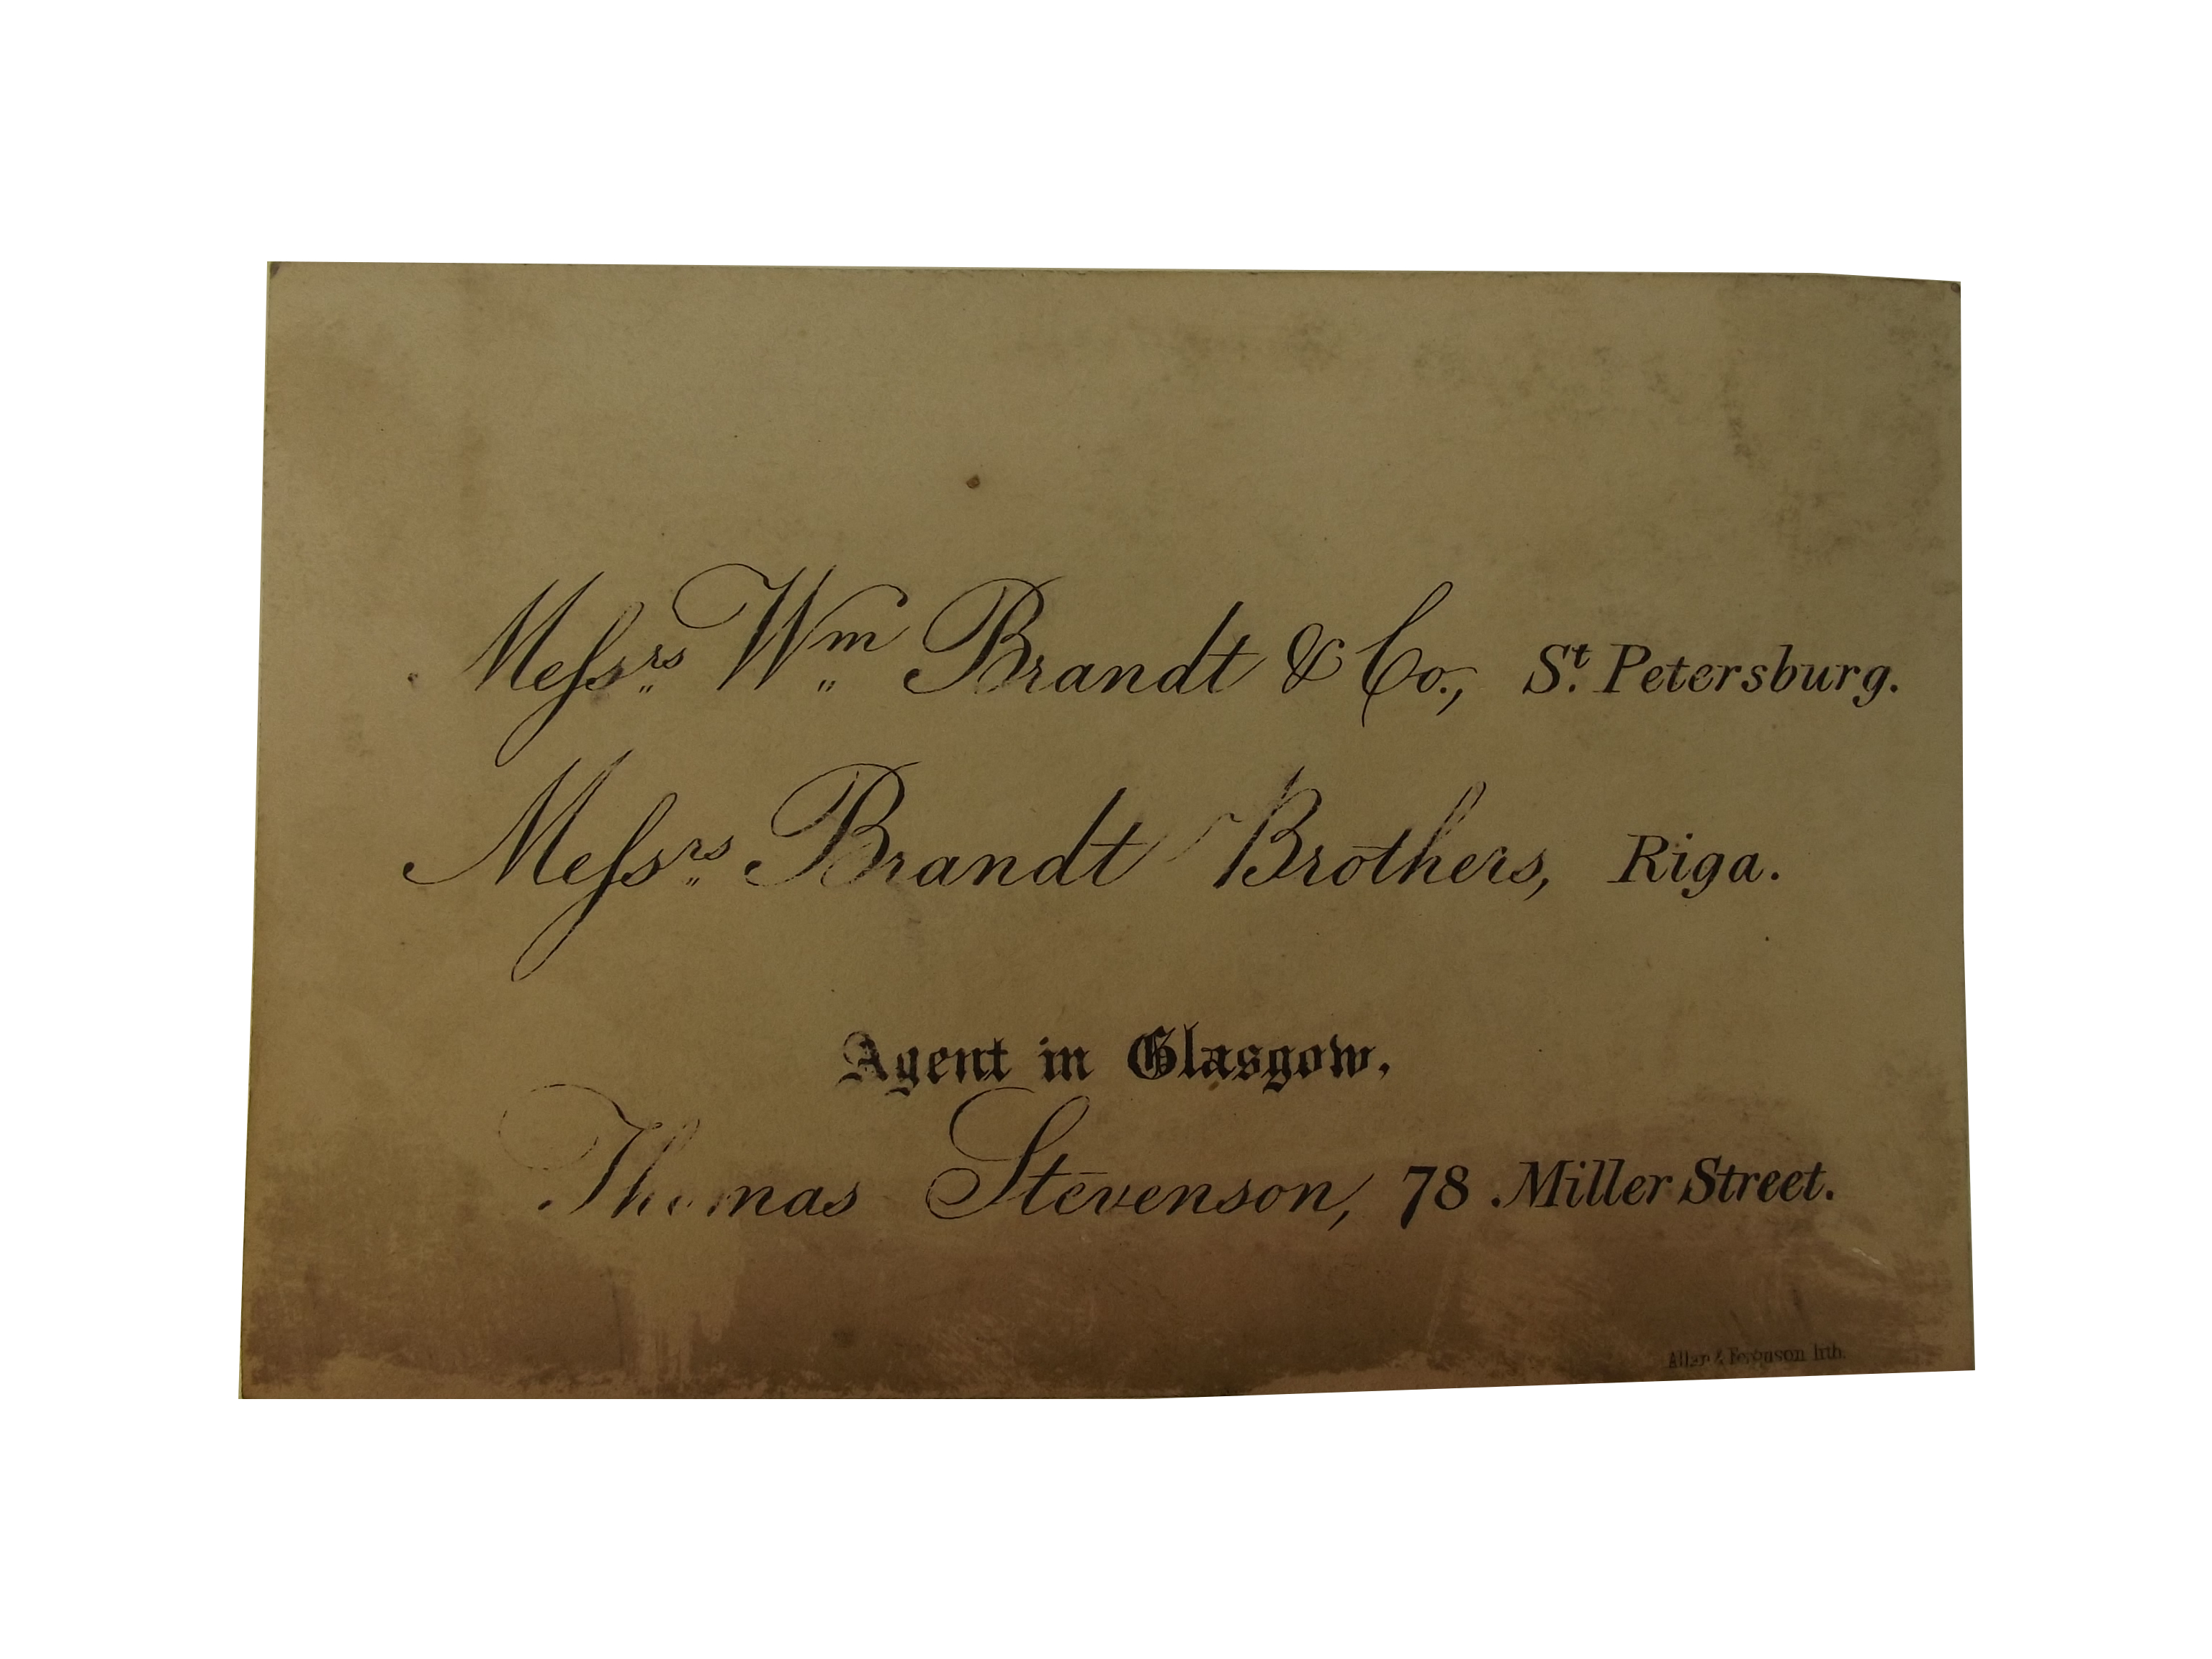 Messrs. Wm. Brandt & Co